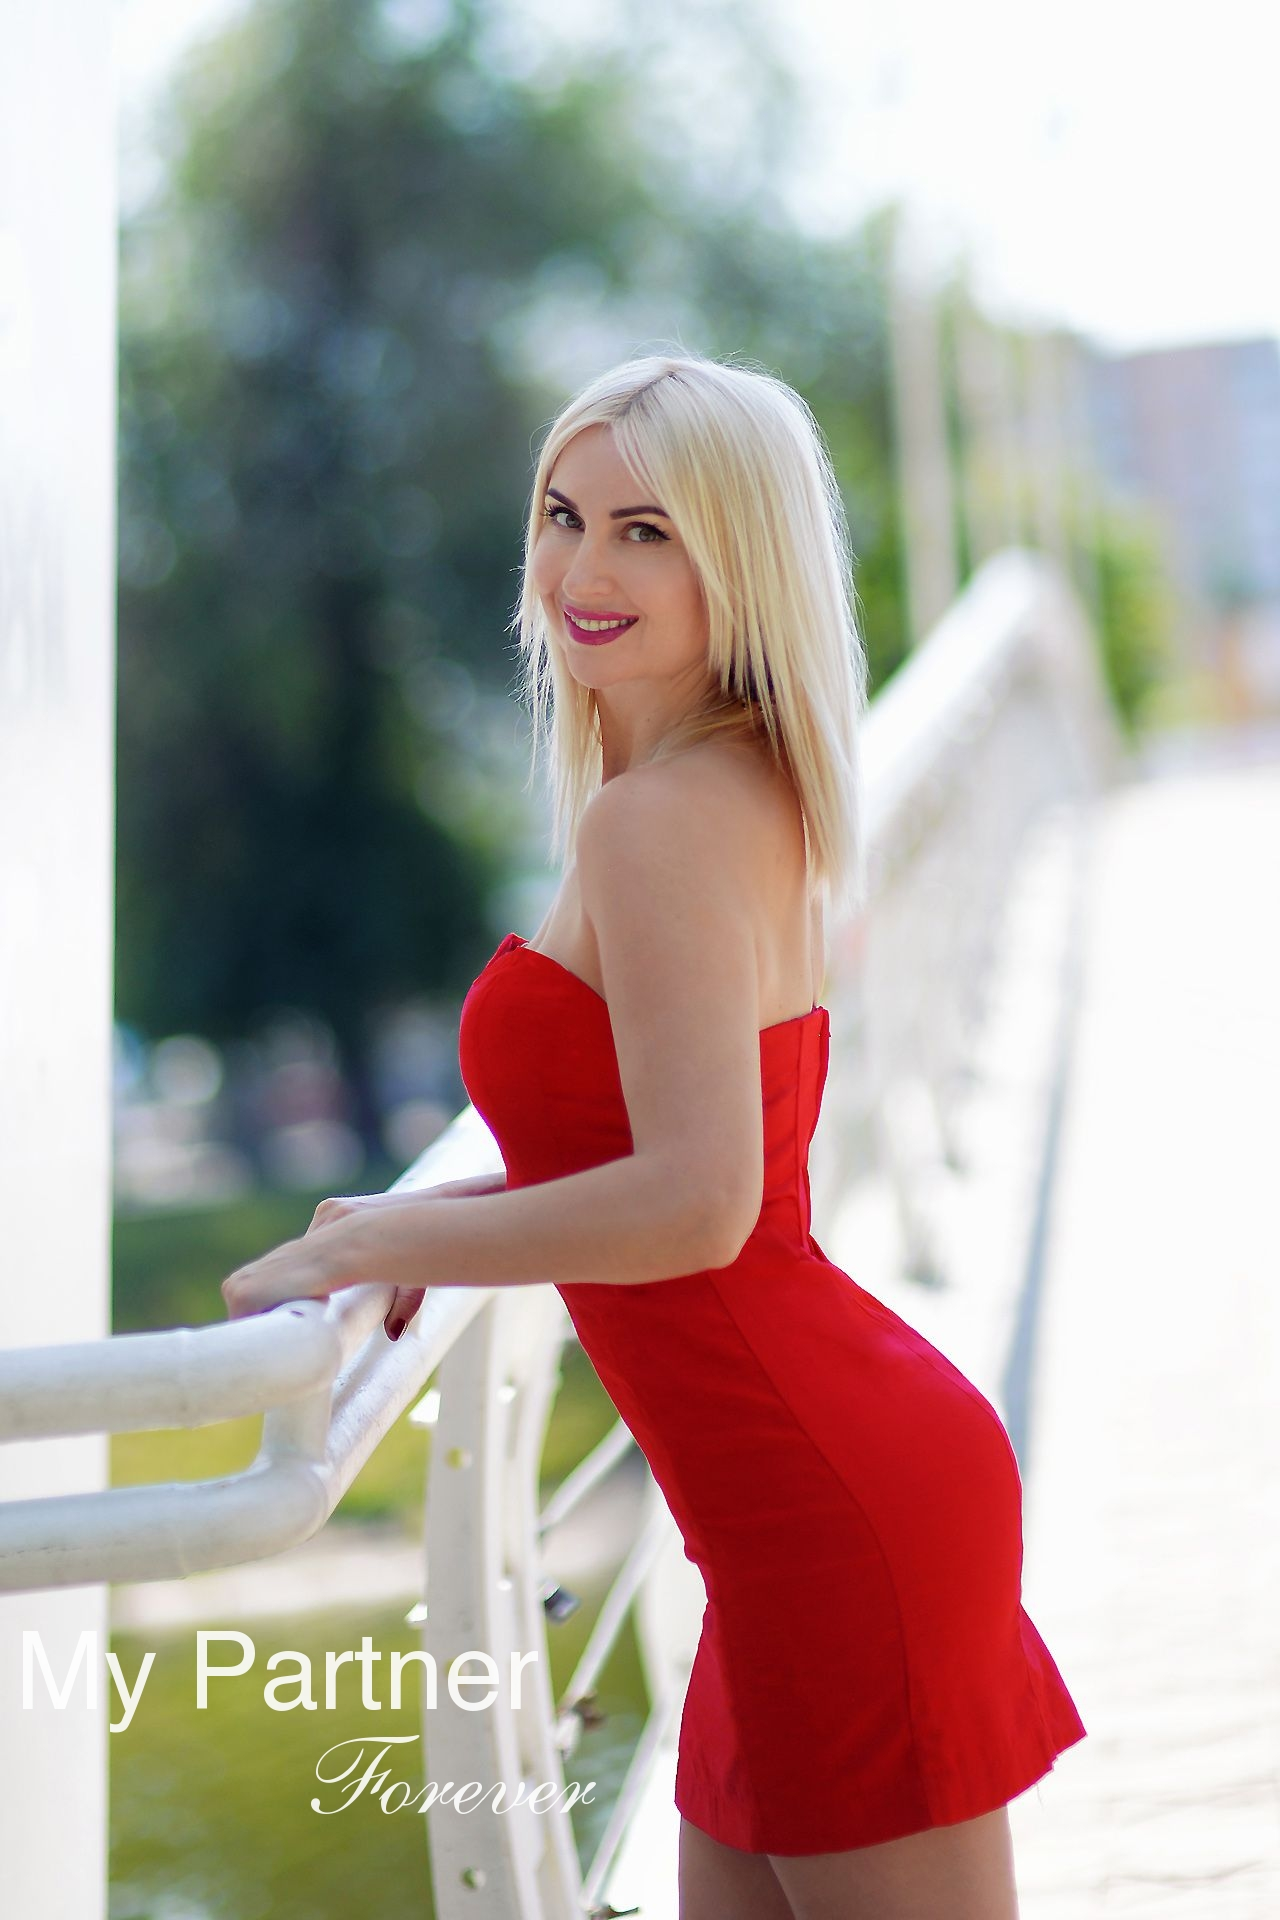 Dating Site to Meet Single Ukrainian Lady Marina from Kharkov, Ukraine